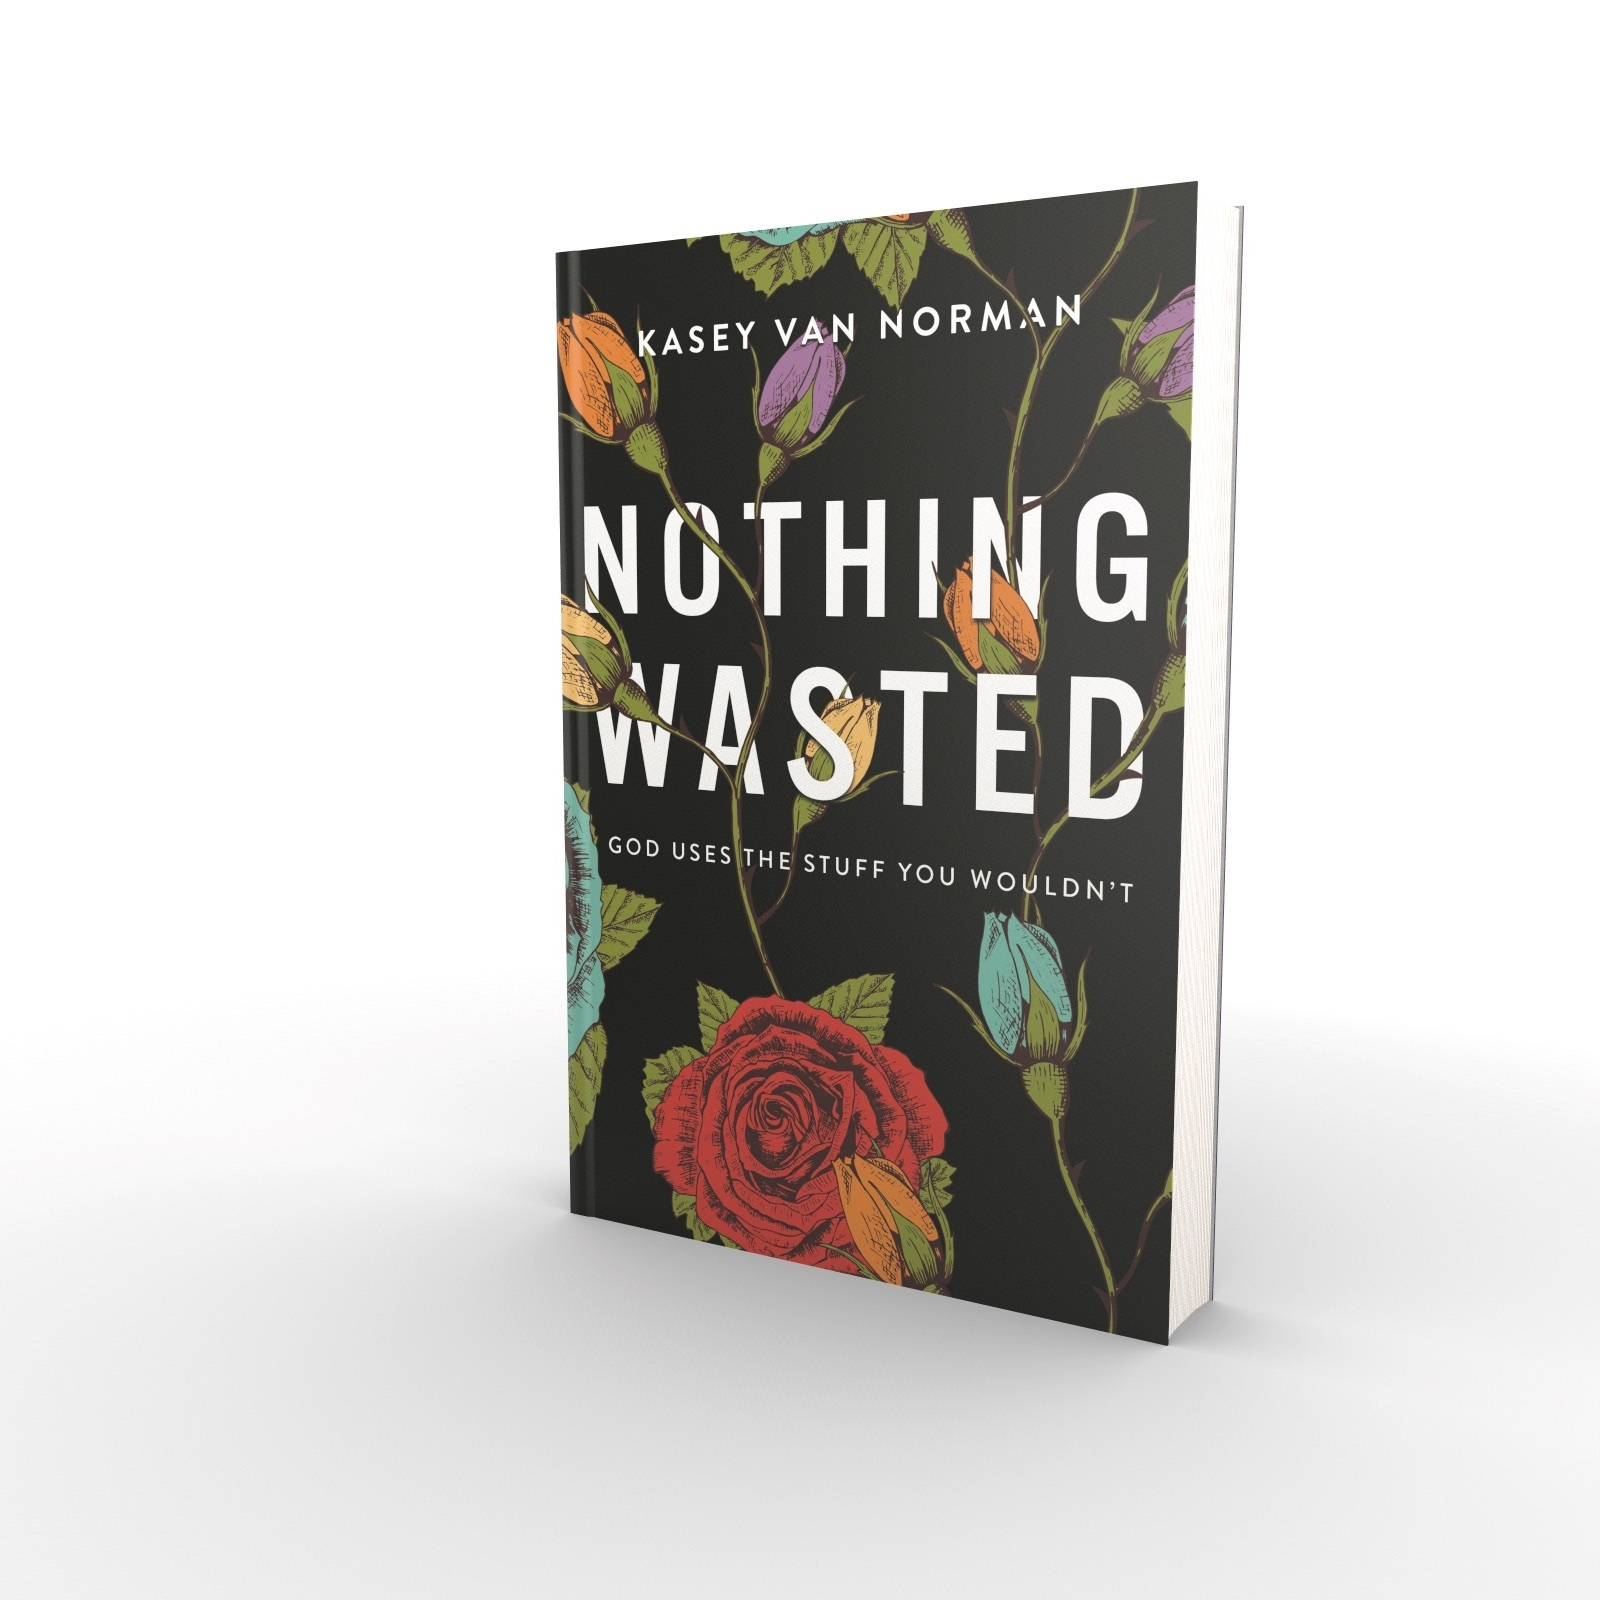 Nothing Wasted - We all have past experiences we wish we could redo, undo, or hide altogether. In Nothing Wasted, counselor and teacher Kasey Van Norman shares how God revealed his specific plan for her life through the most unlikely, embarrassing, and painful seasons of her past. Her vulnerability invites you to discover God's personal and purposeful design for your future, not in spite of your story, but through it.AVAILABLE NOVEMBER 12